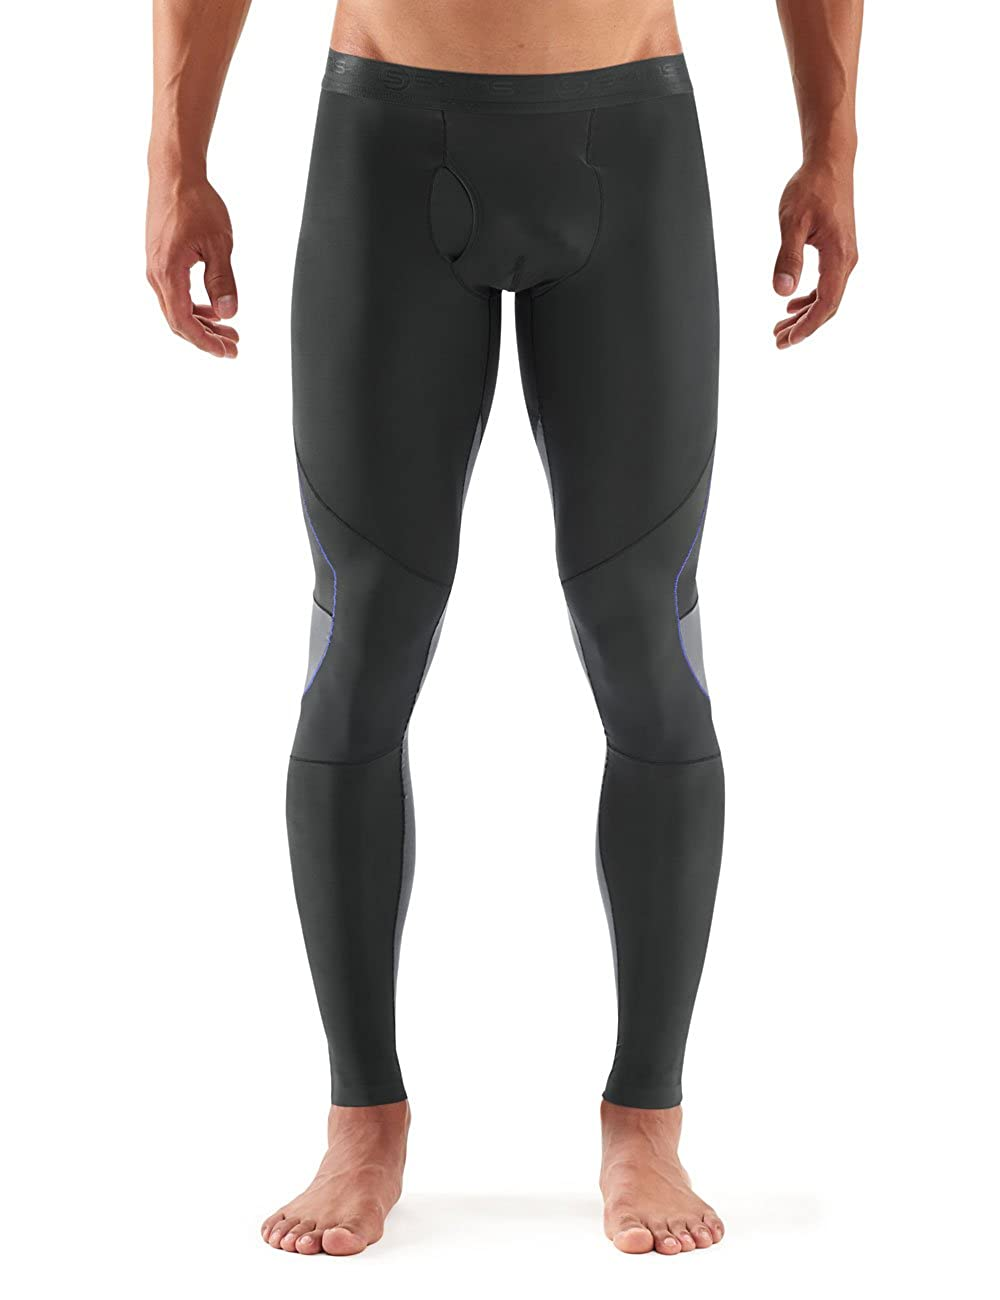 b60dbb16122e6 Amazon.com: Skins Men's RY400 Compression Recovery Tights: Clothing